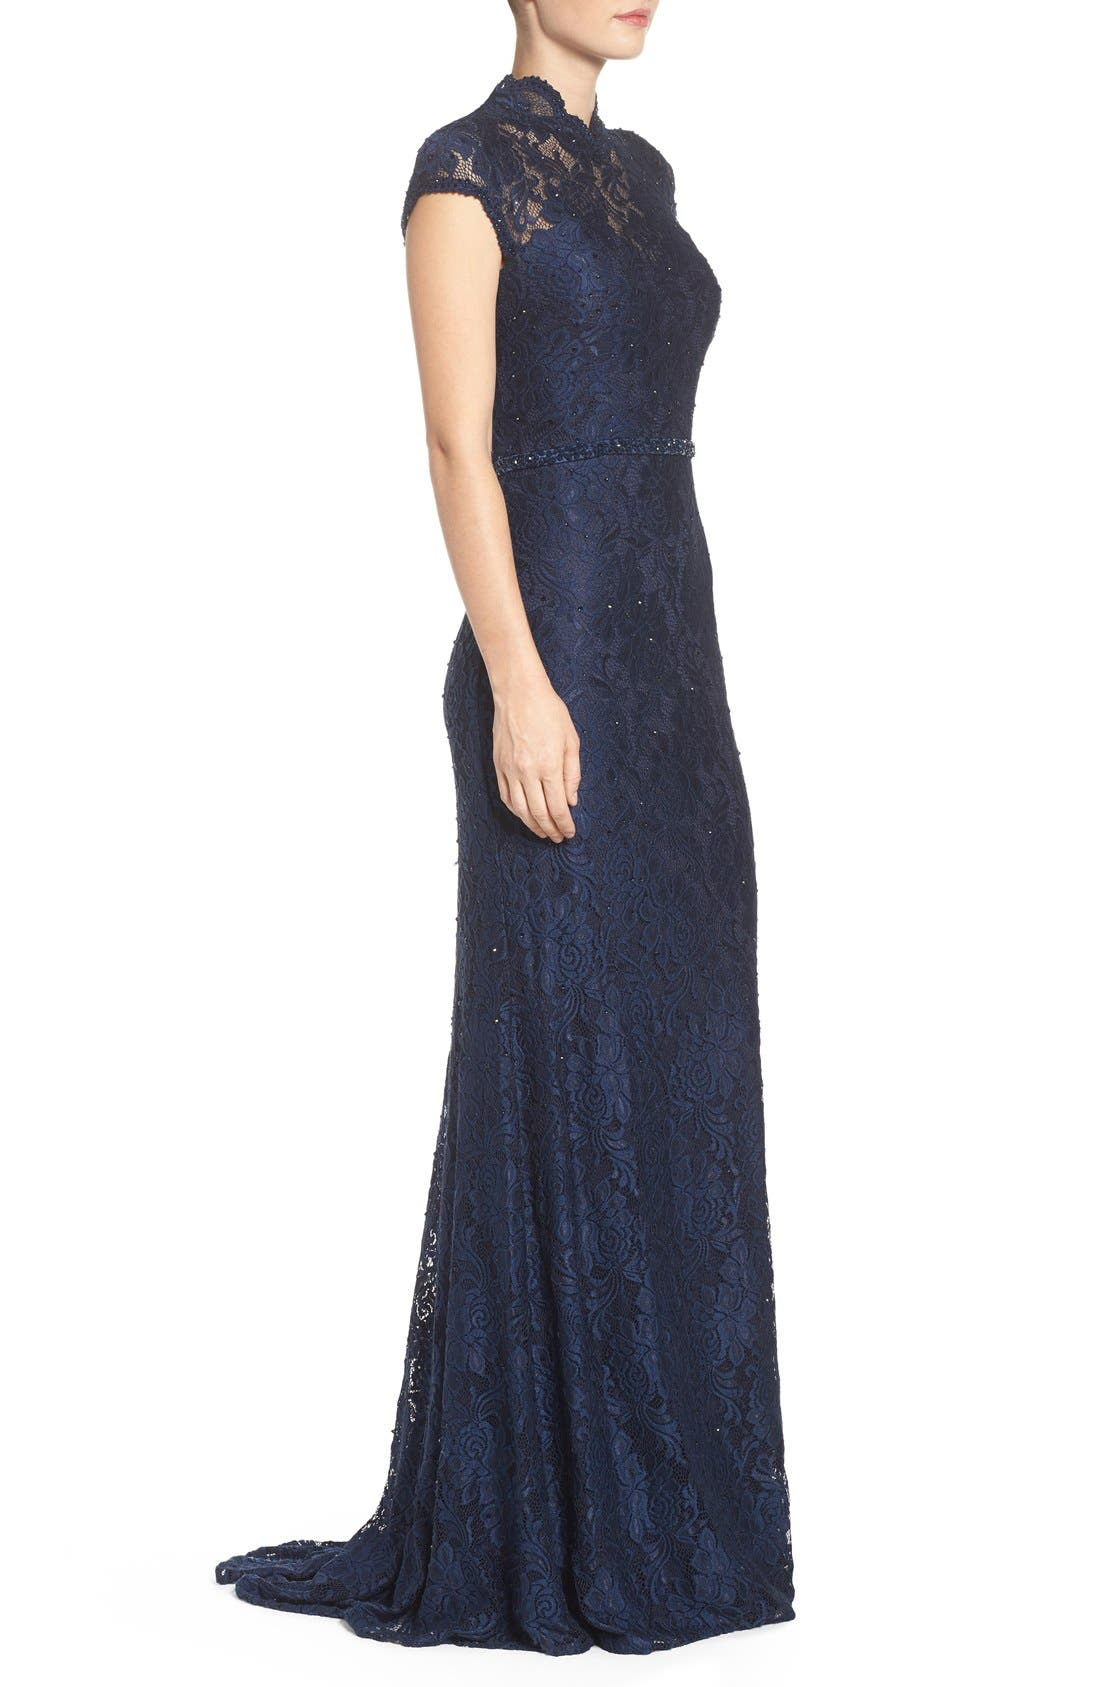 Embellished Lace Gown,                             Alternate thumbnail 10, color,                             NAVY